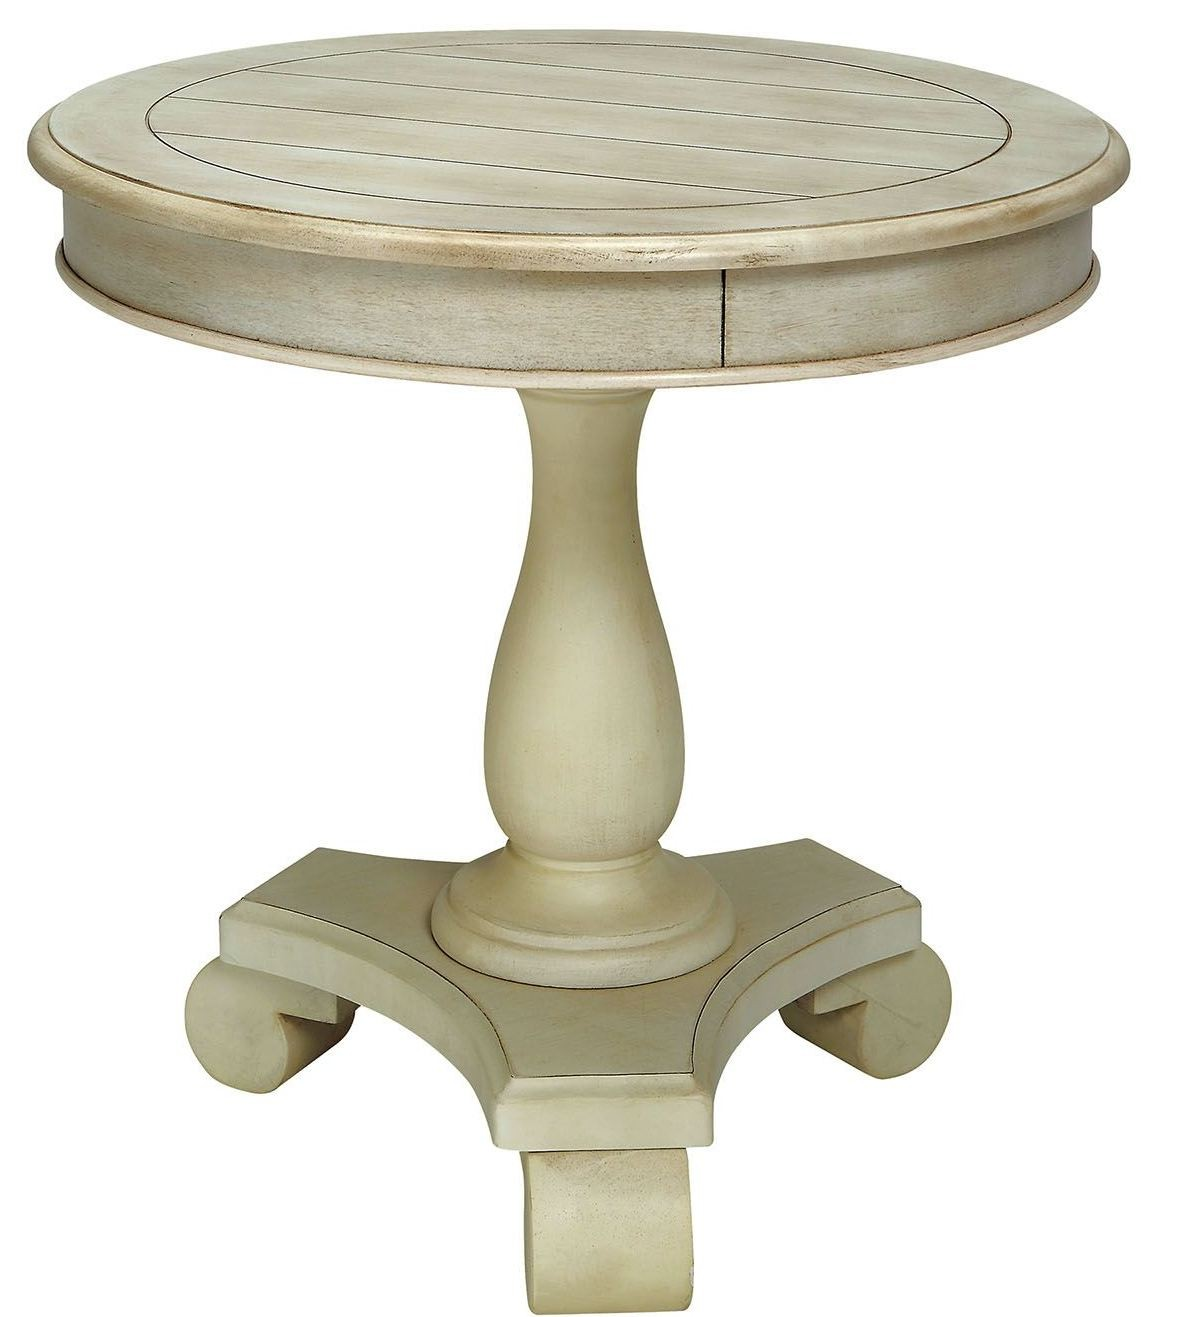 Kalea Antique White Round Accent Table From Furniture Of